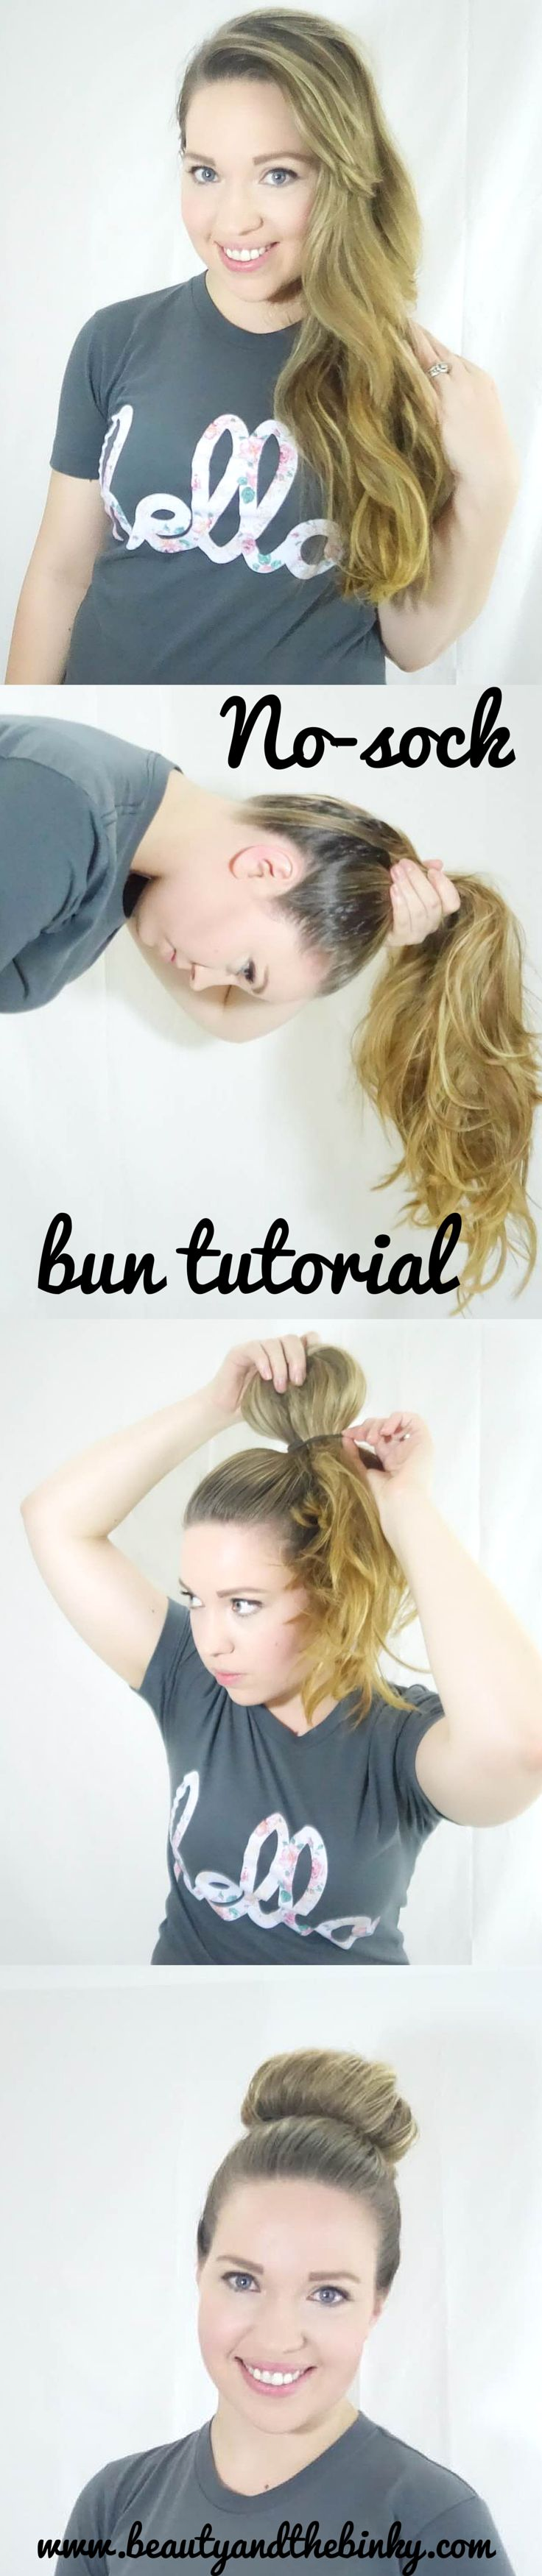 Long Hair Tips for a Sock Bun without the sock! Mom buns make it easy for working moms! | Beauty and the Binky blog | @goodyhair @PanteneUS